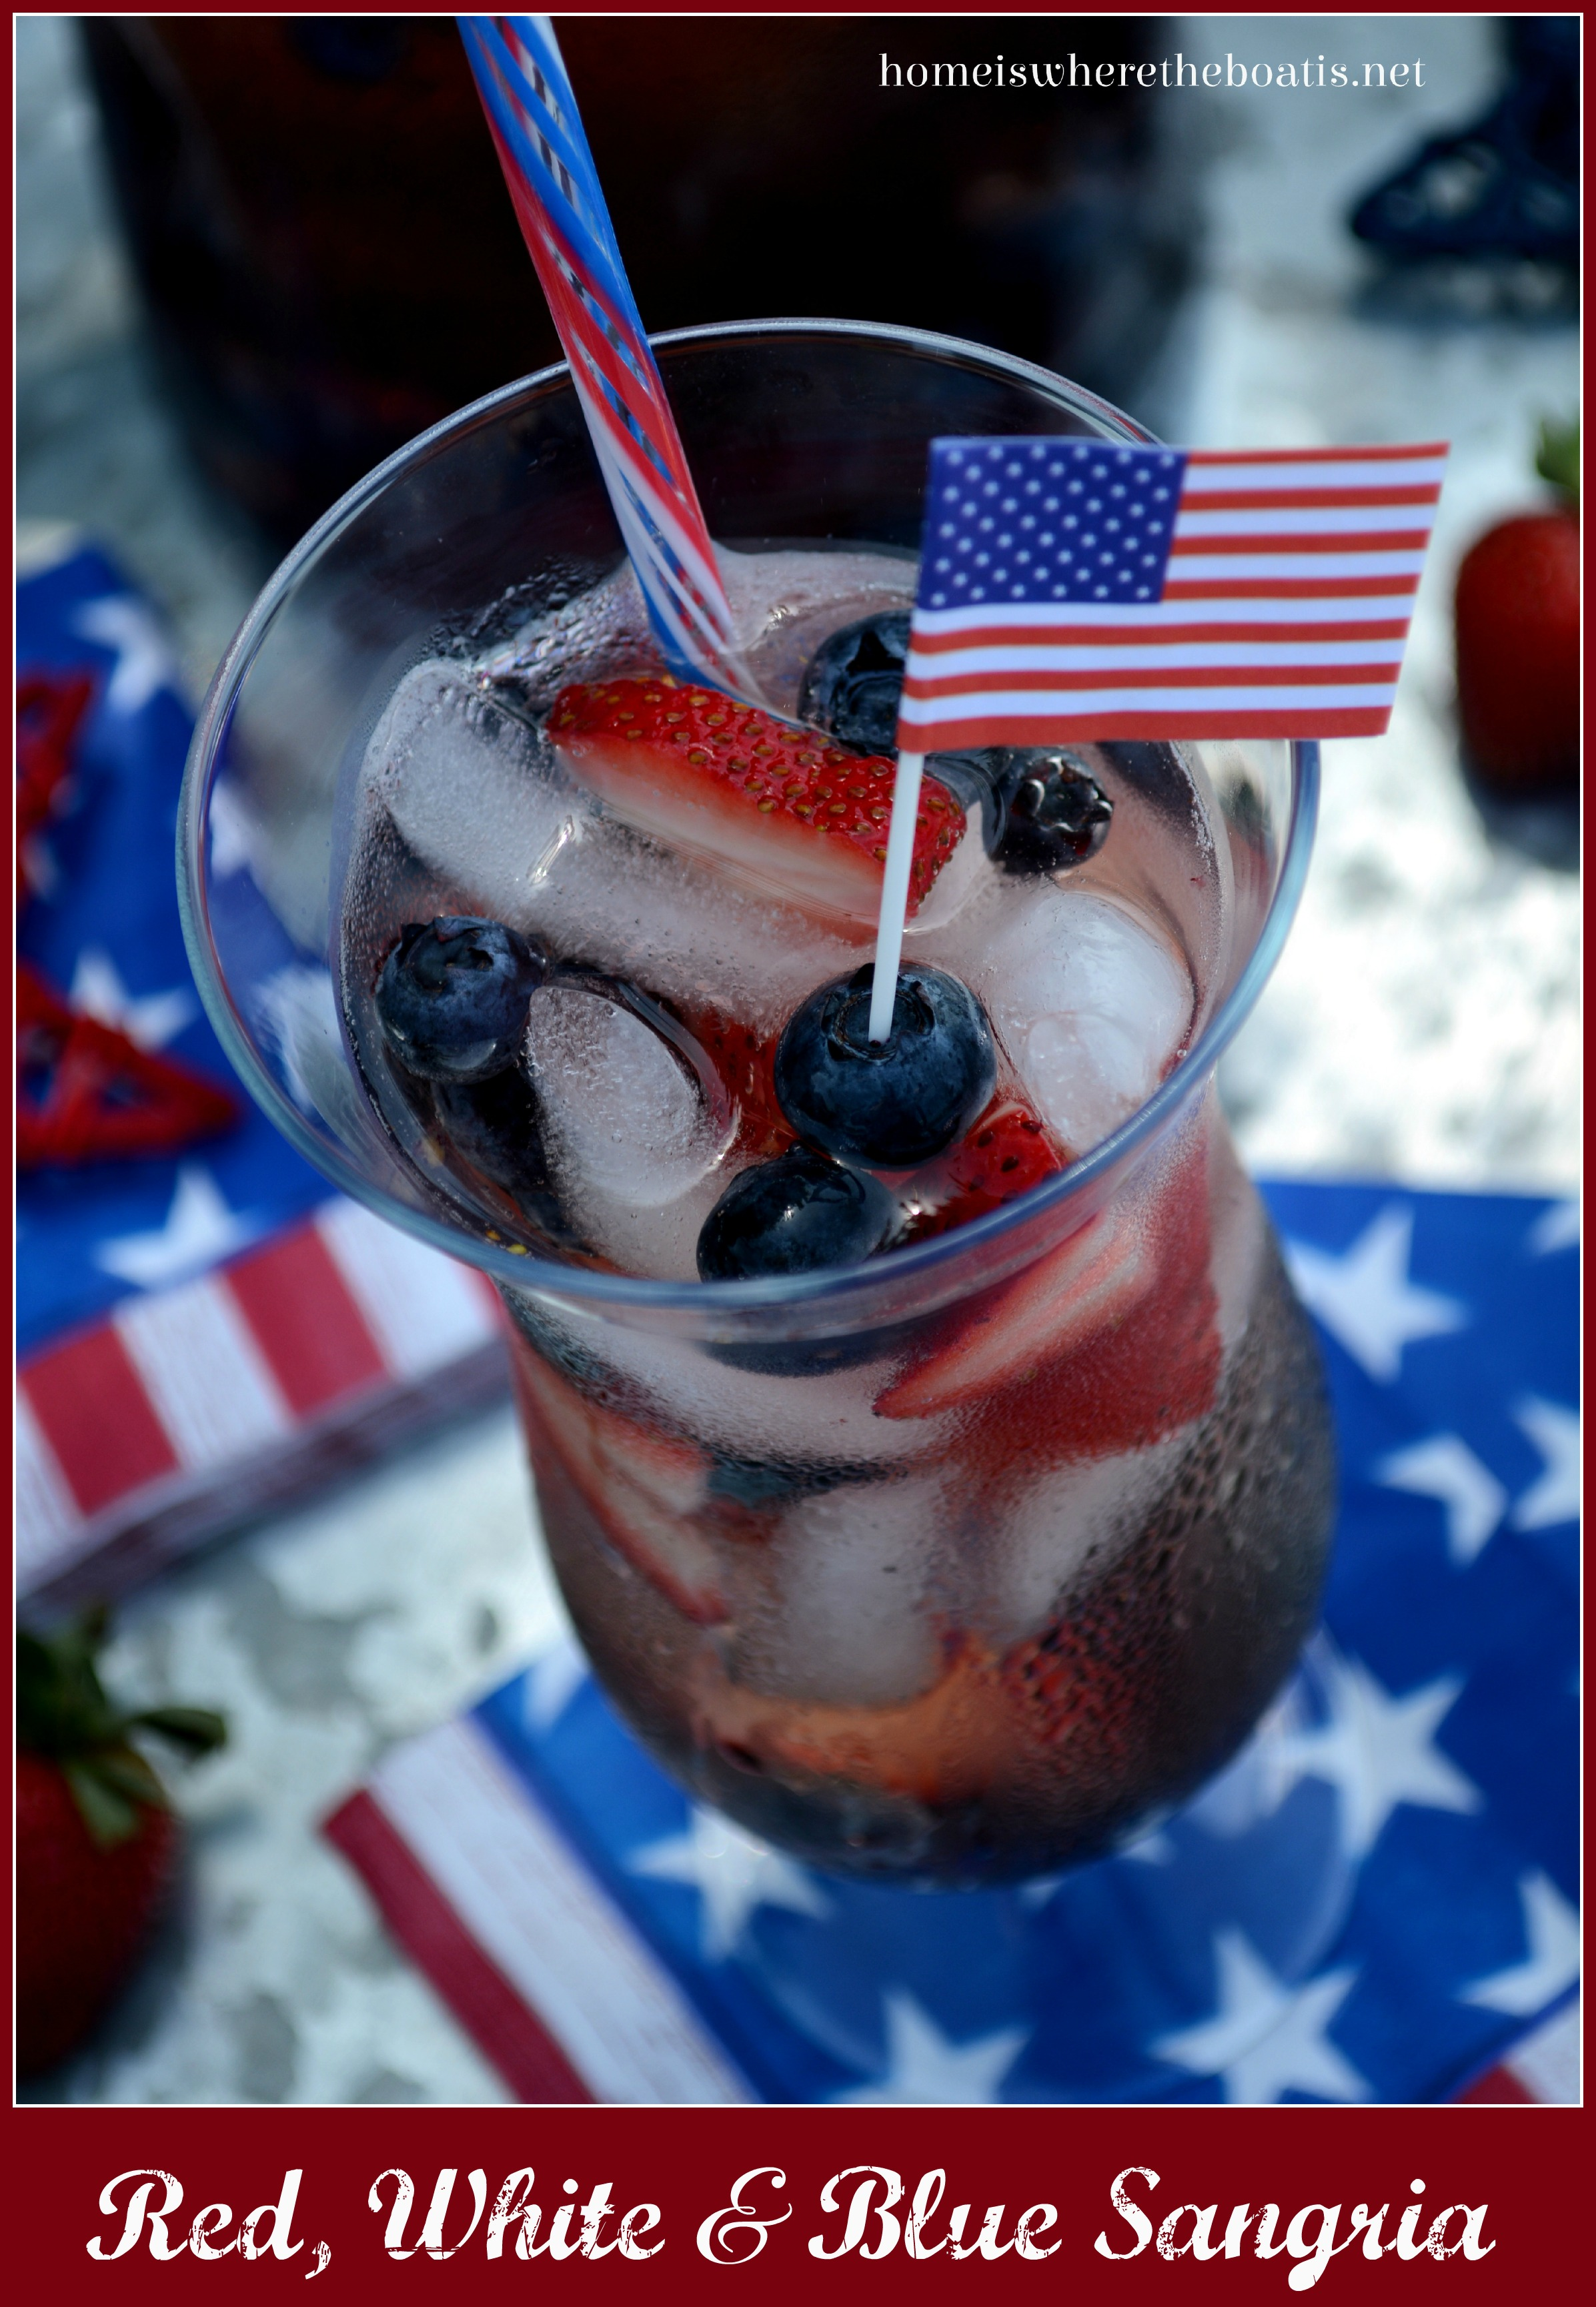 Fourth of July SippingRed, White and Blue Sangria!Home is